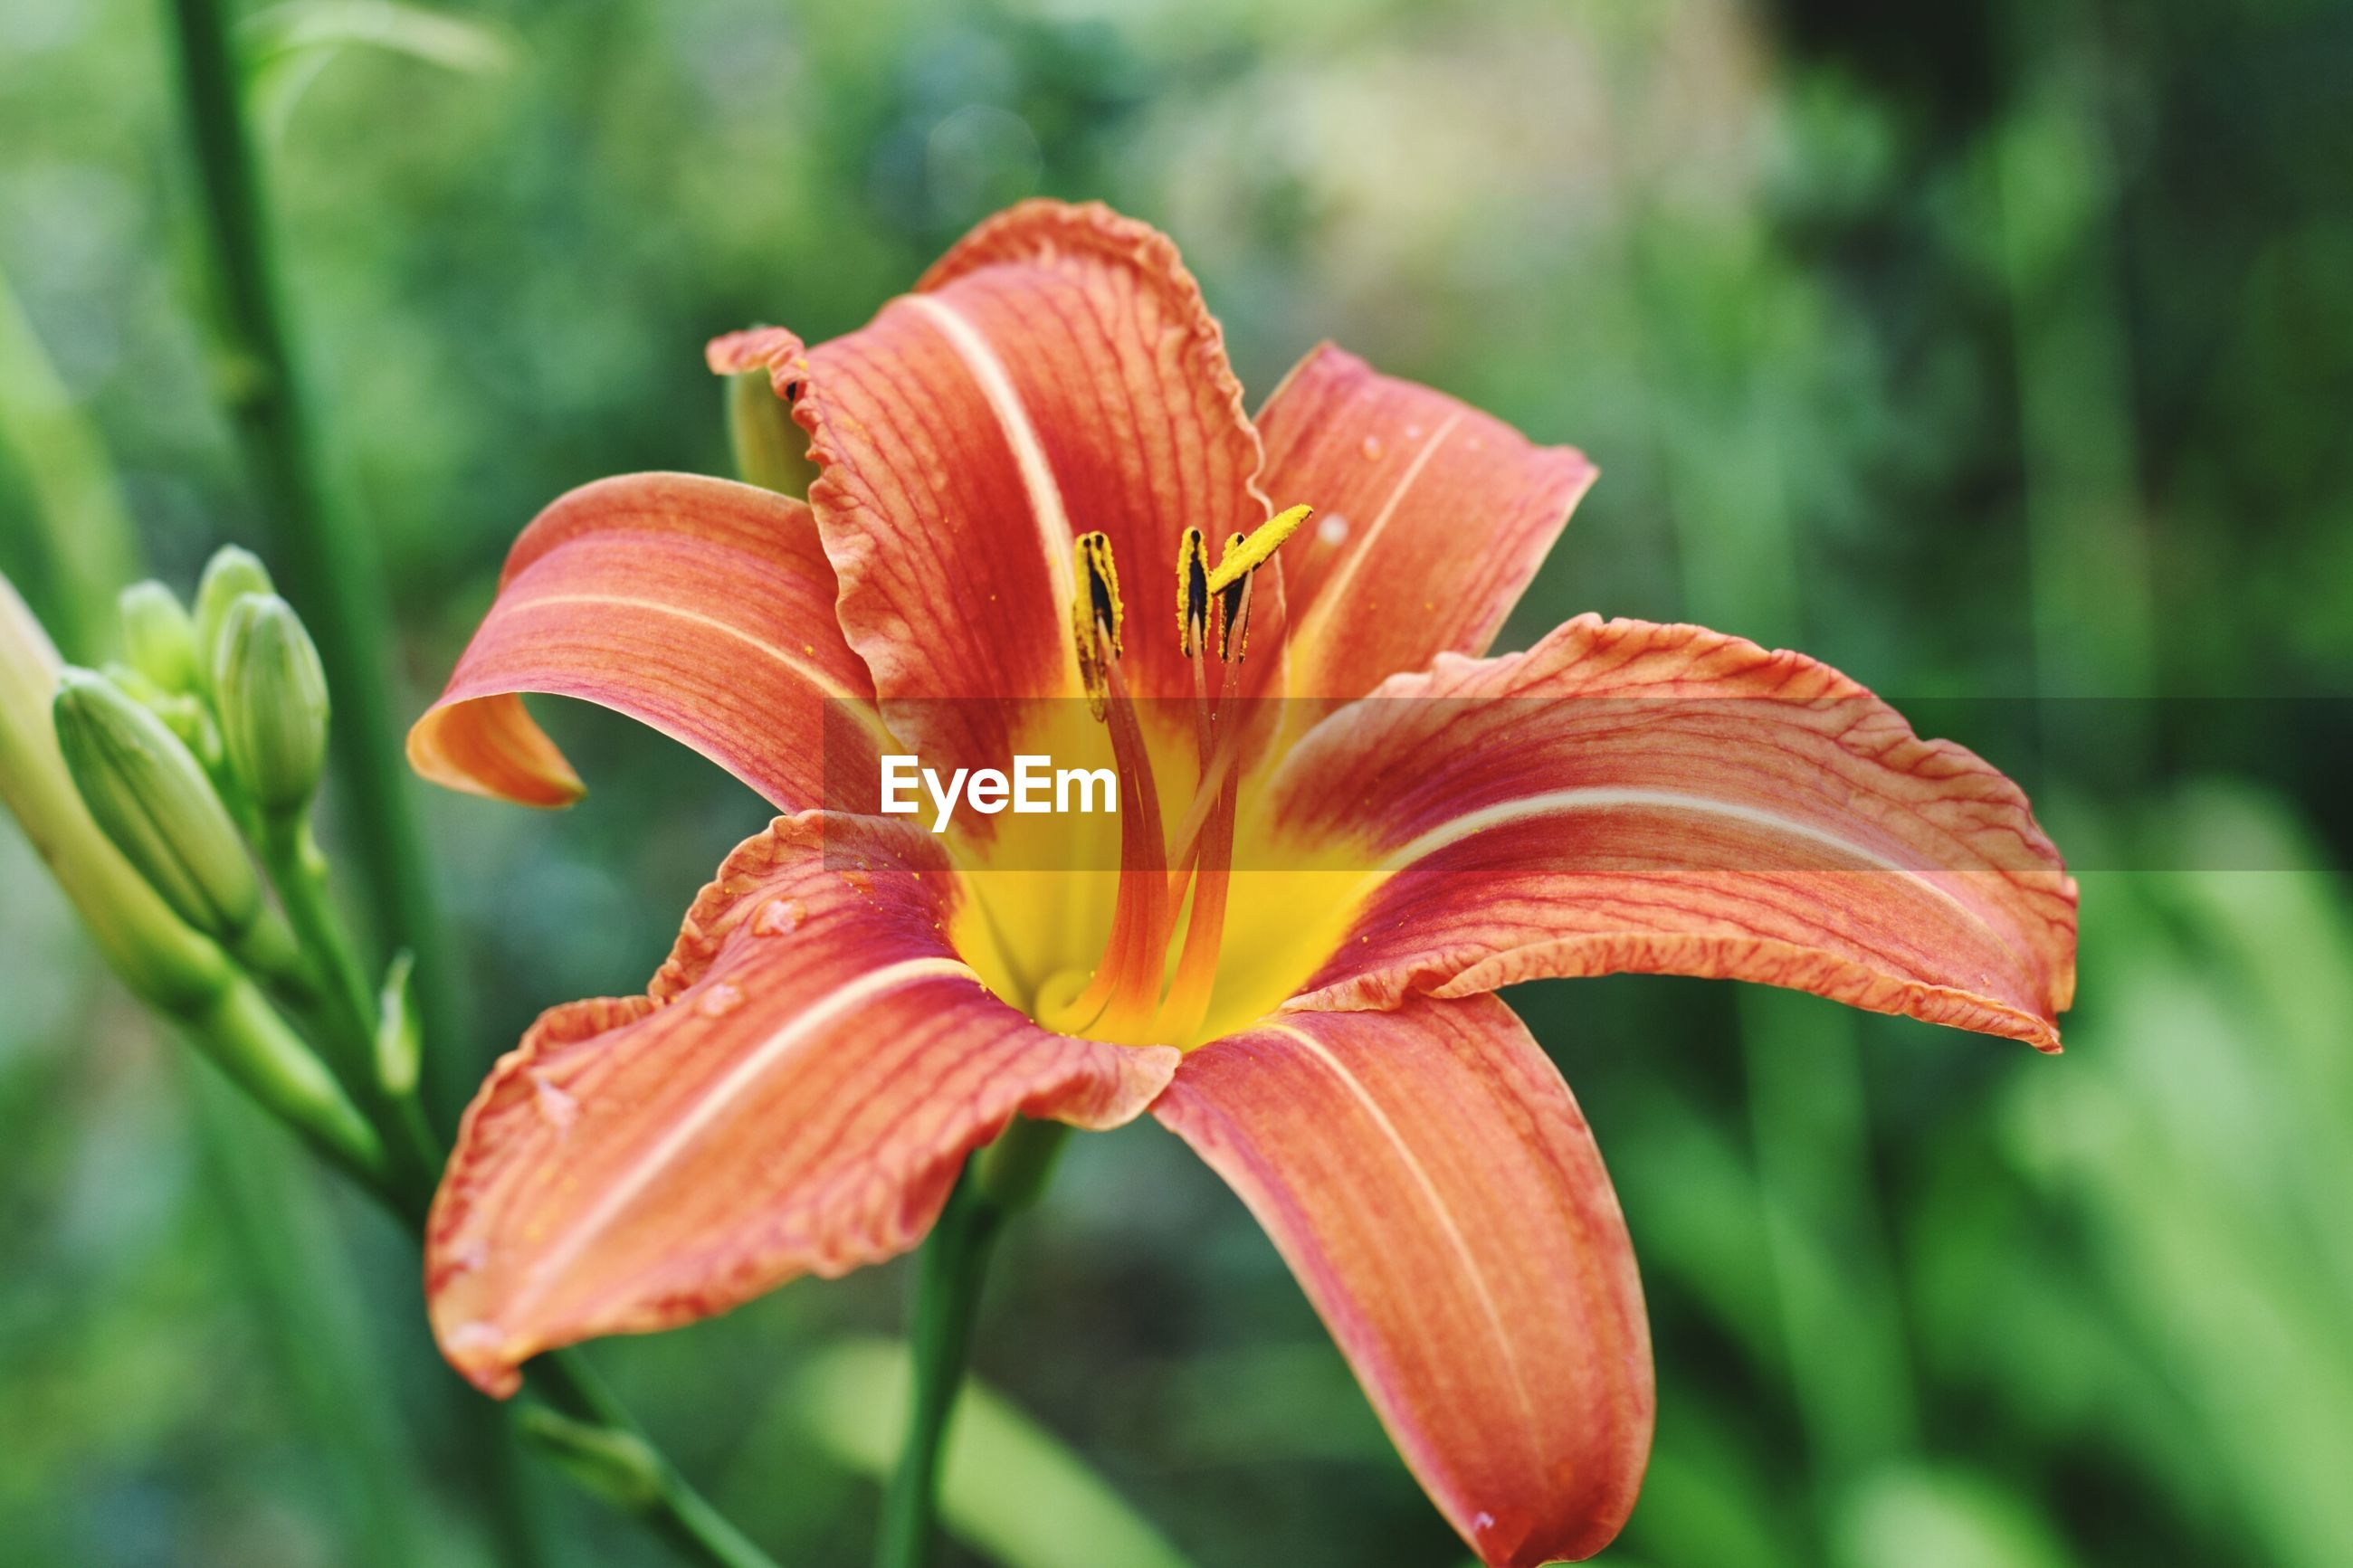 CLOSE-UP OF DAY LILY WITH ORANGE FLOWER